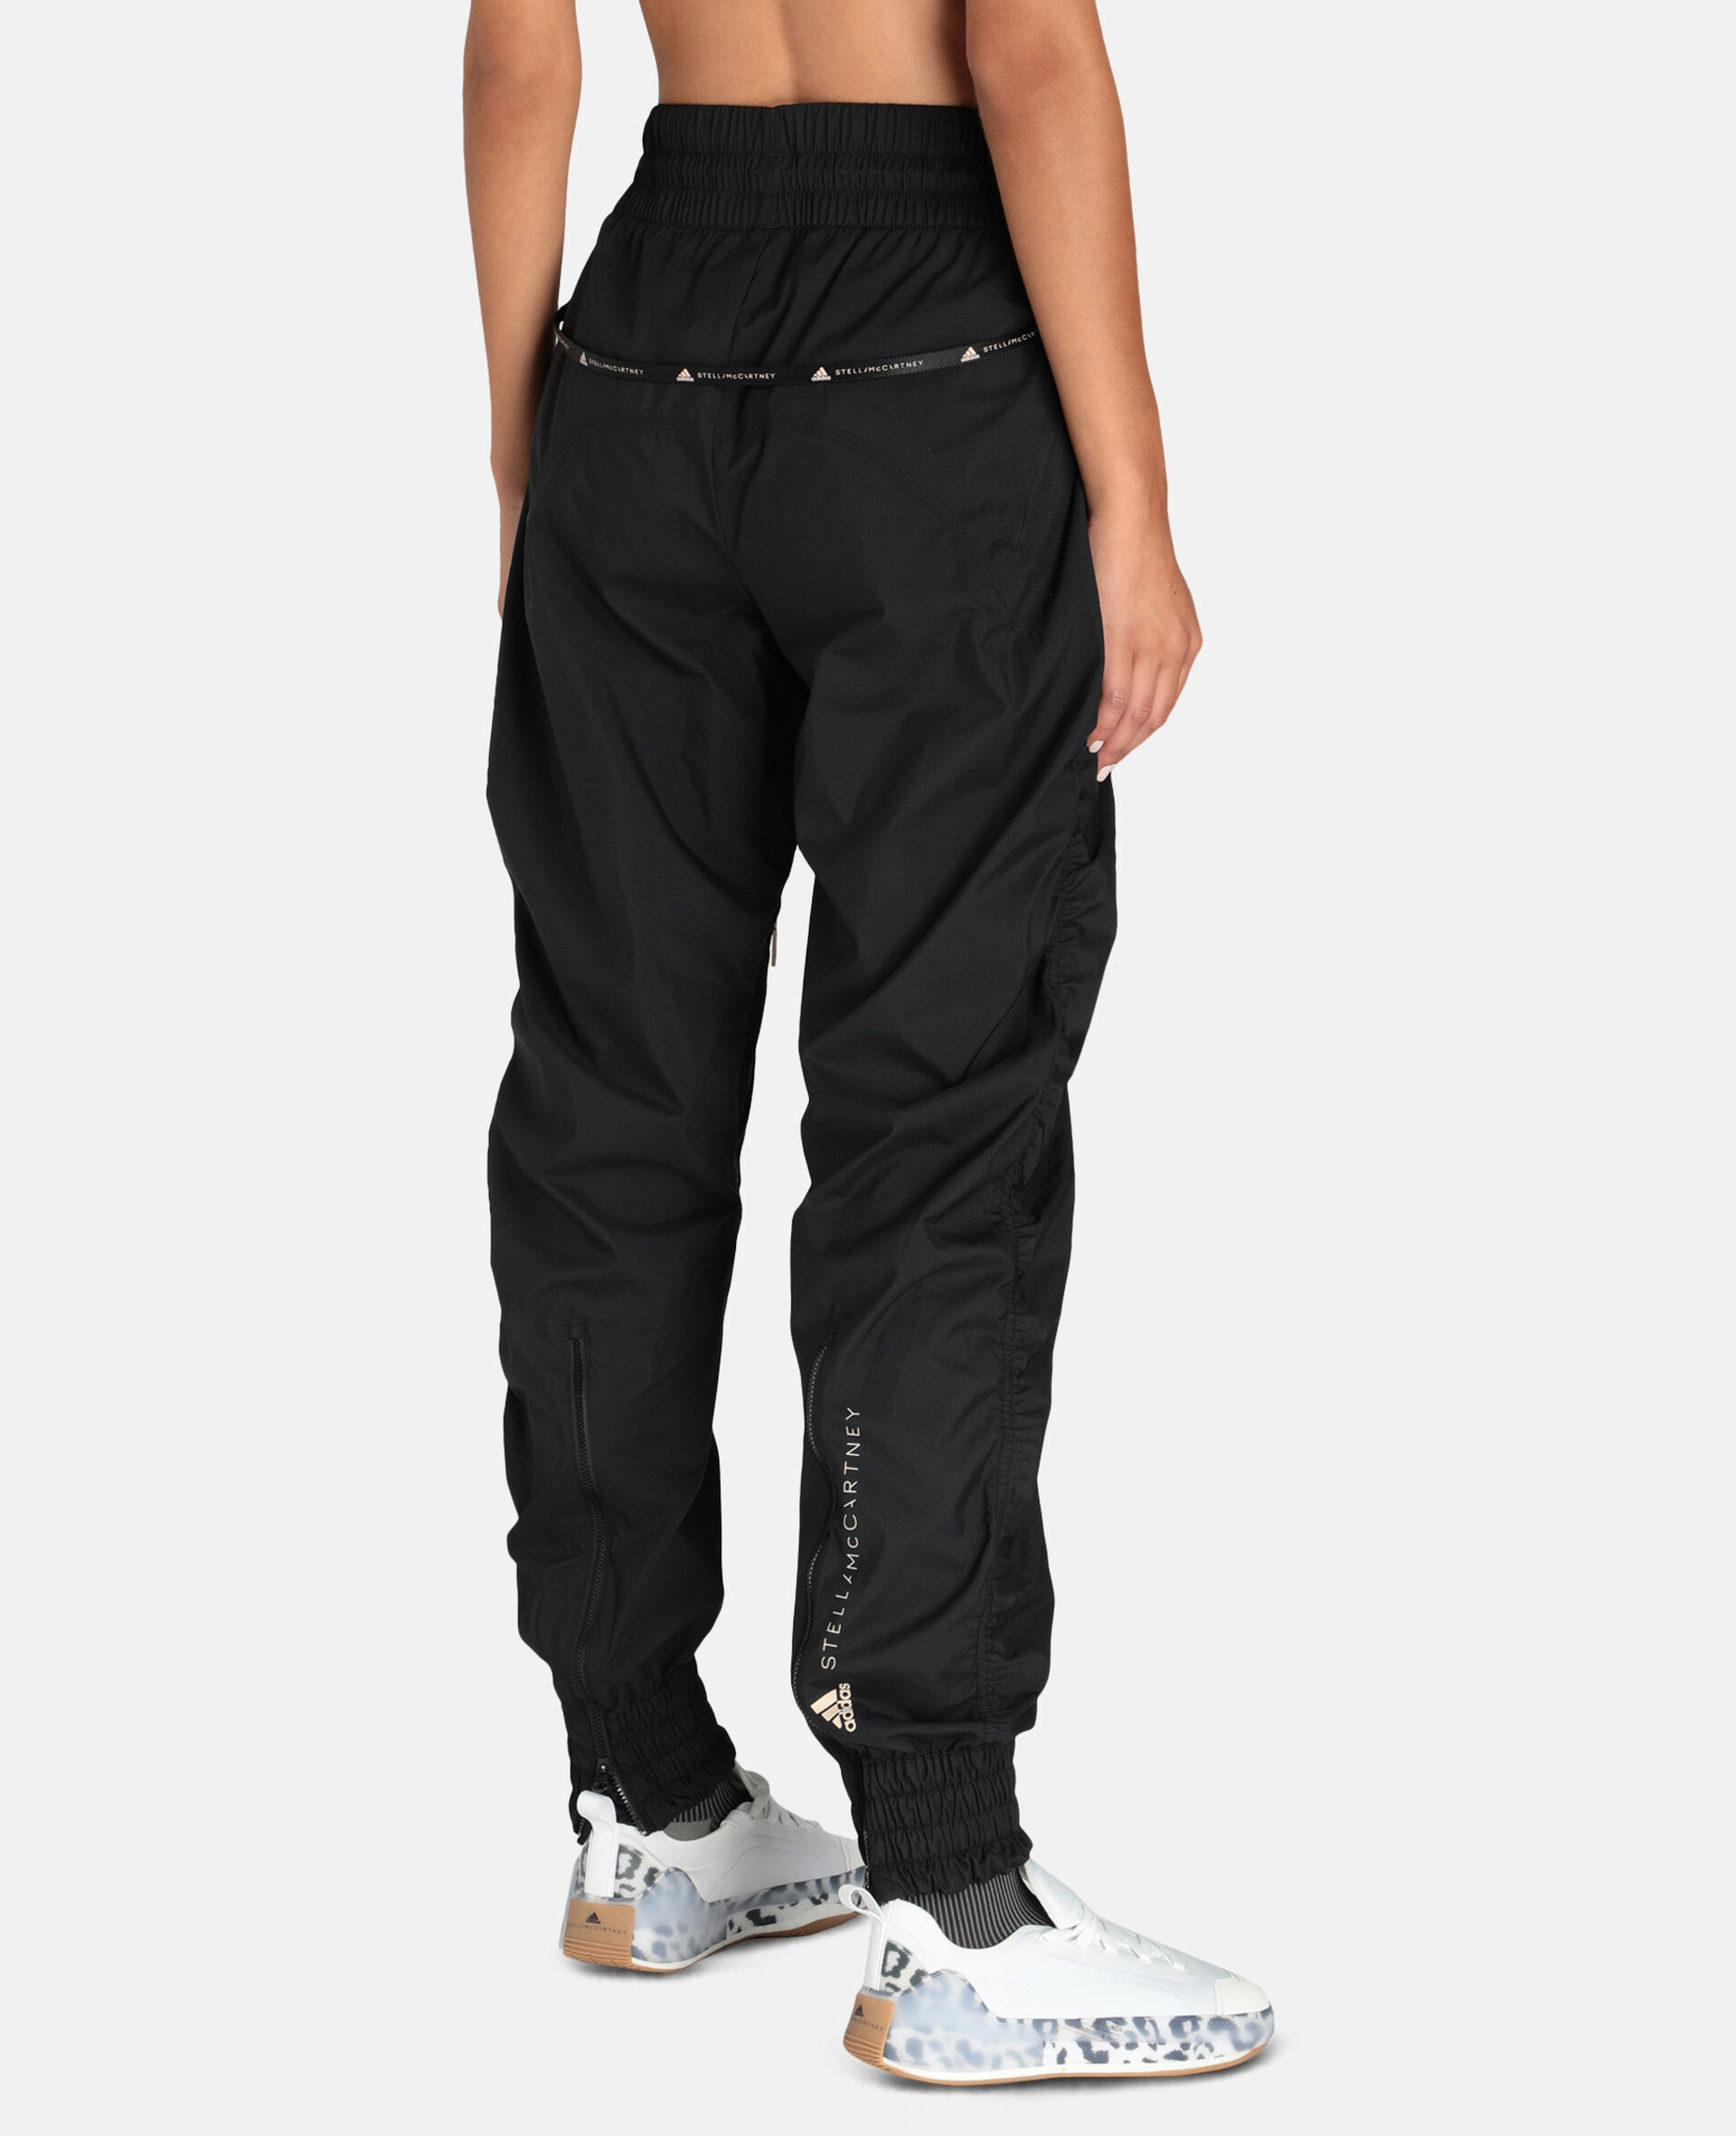 Black Woven Training Pants-Black-large image number 2